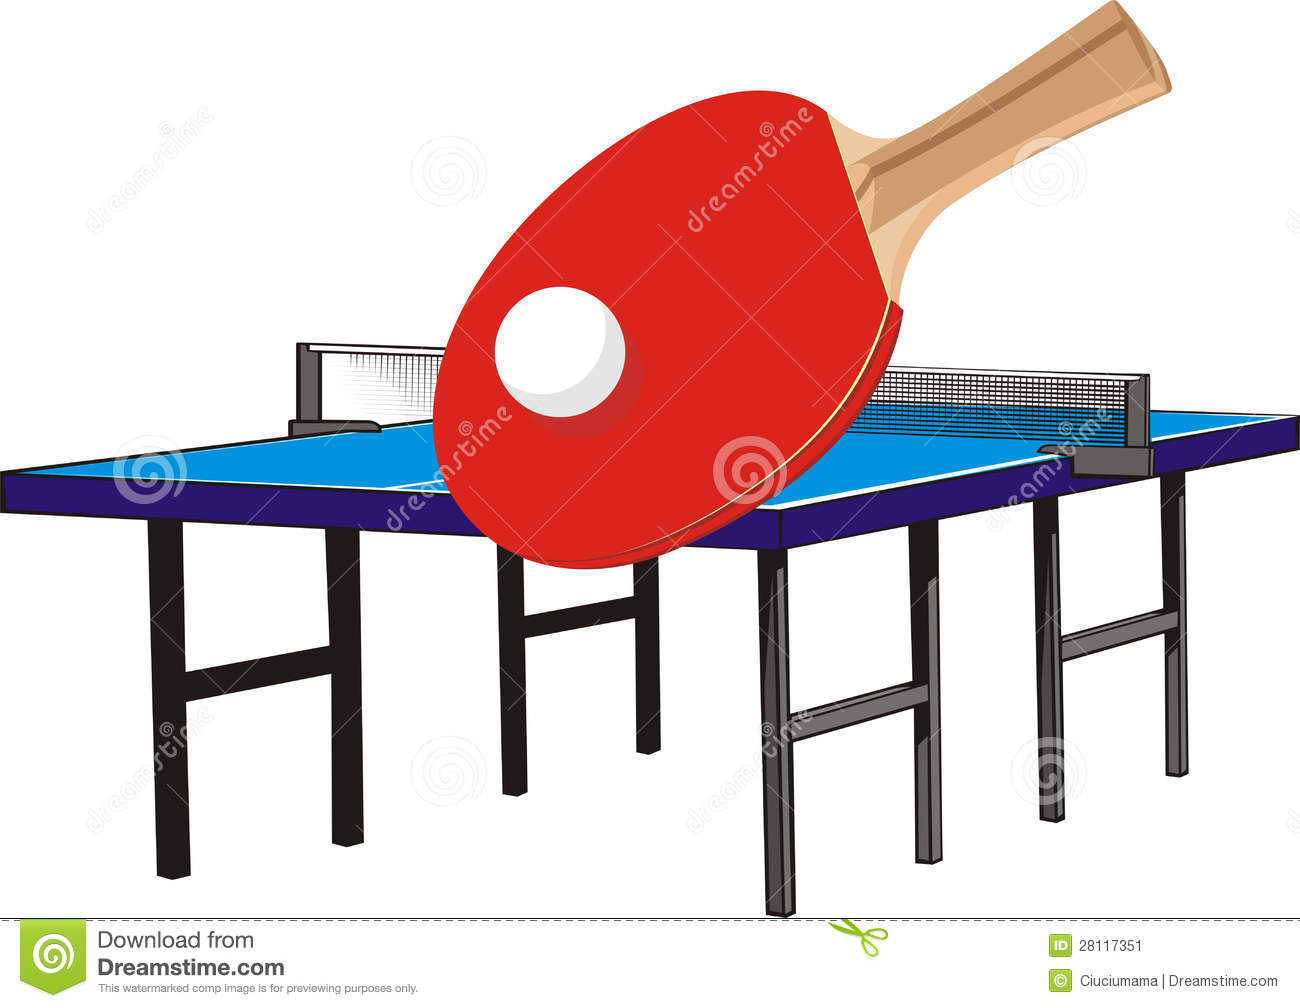 Table tennis equipment stock image image of indoor 28117351 - Equipment for table tennis ...